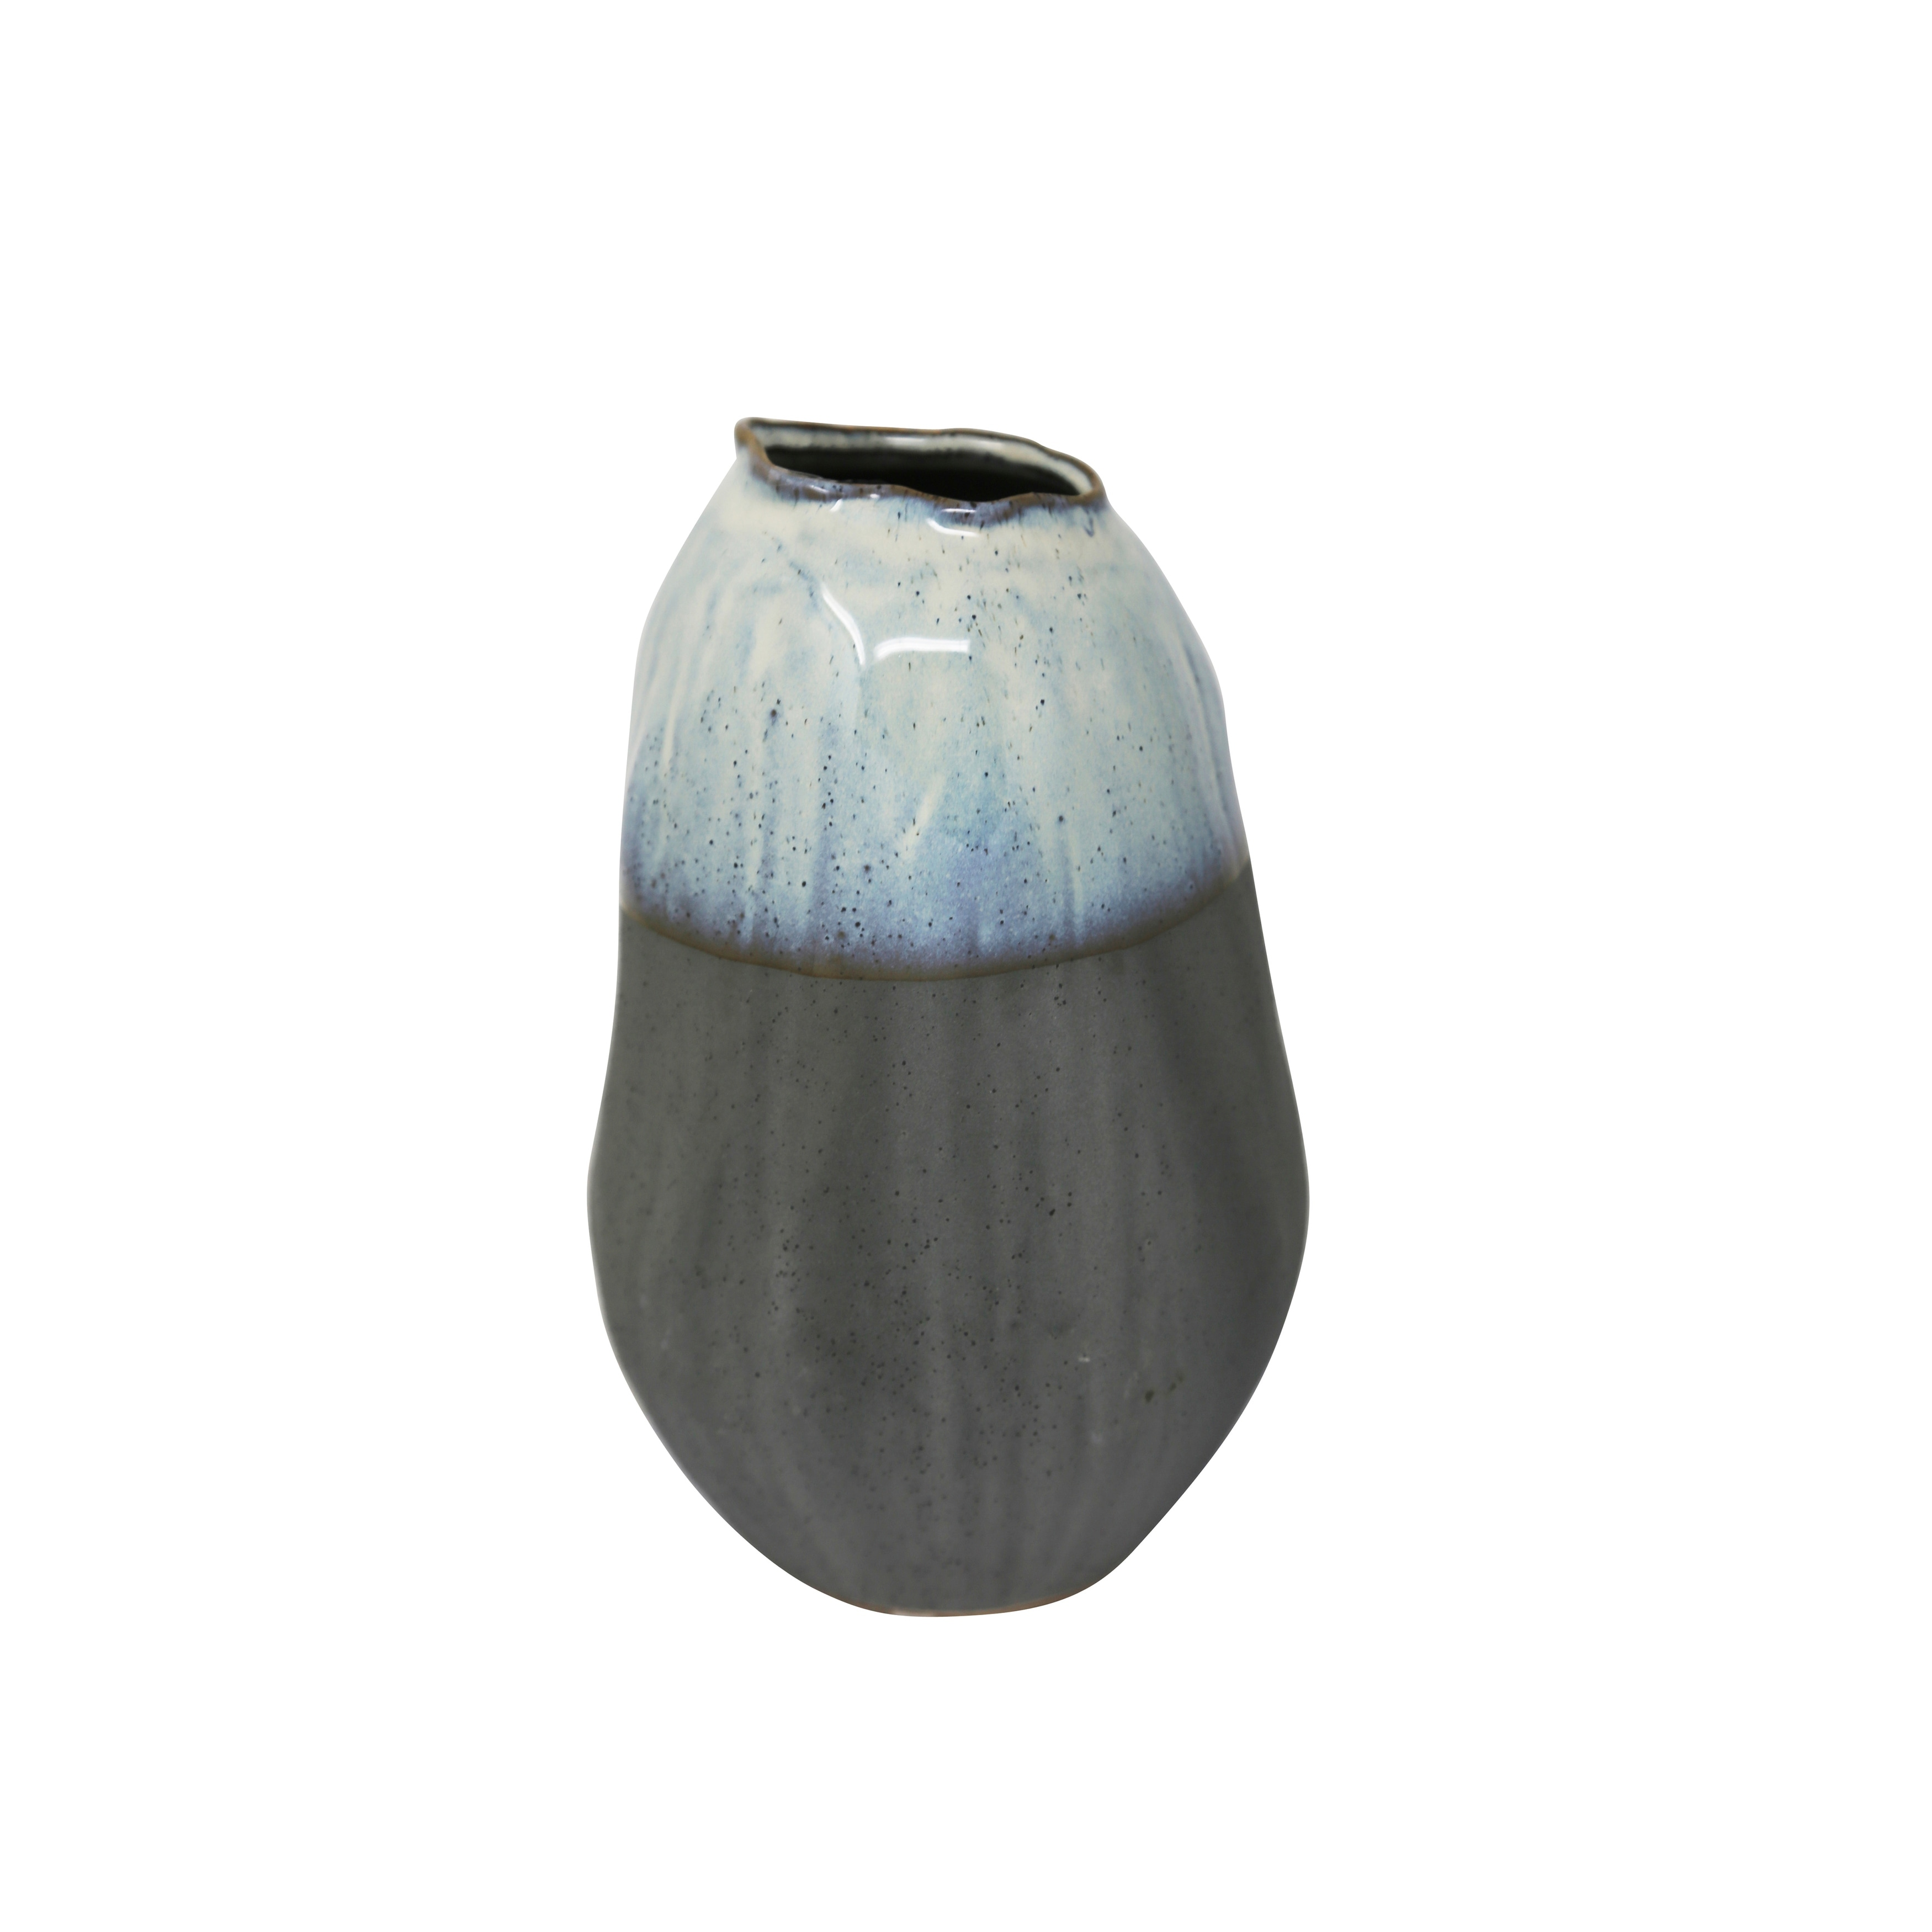 Ceramic Two Toned Vase with Titled Mouth Rim and Bottom, Small, Blue and Gray